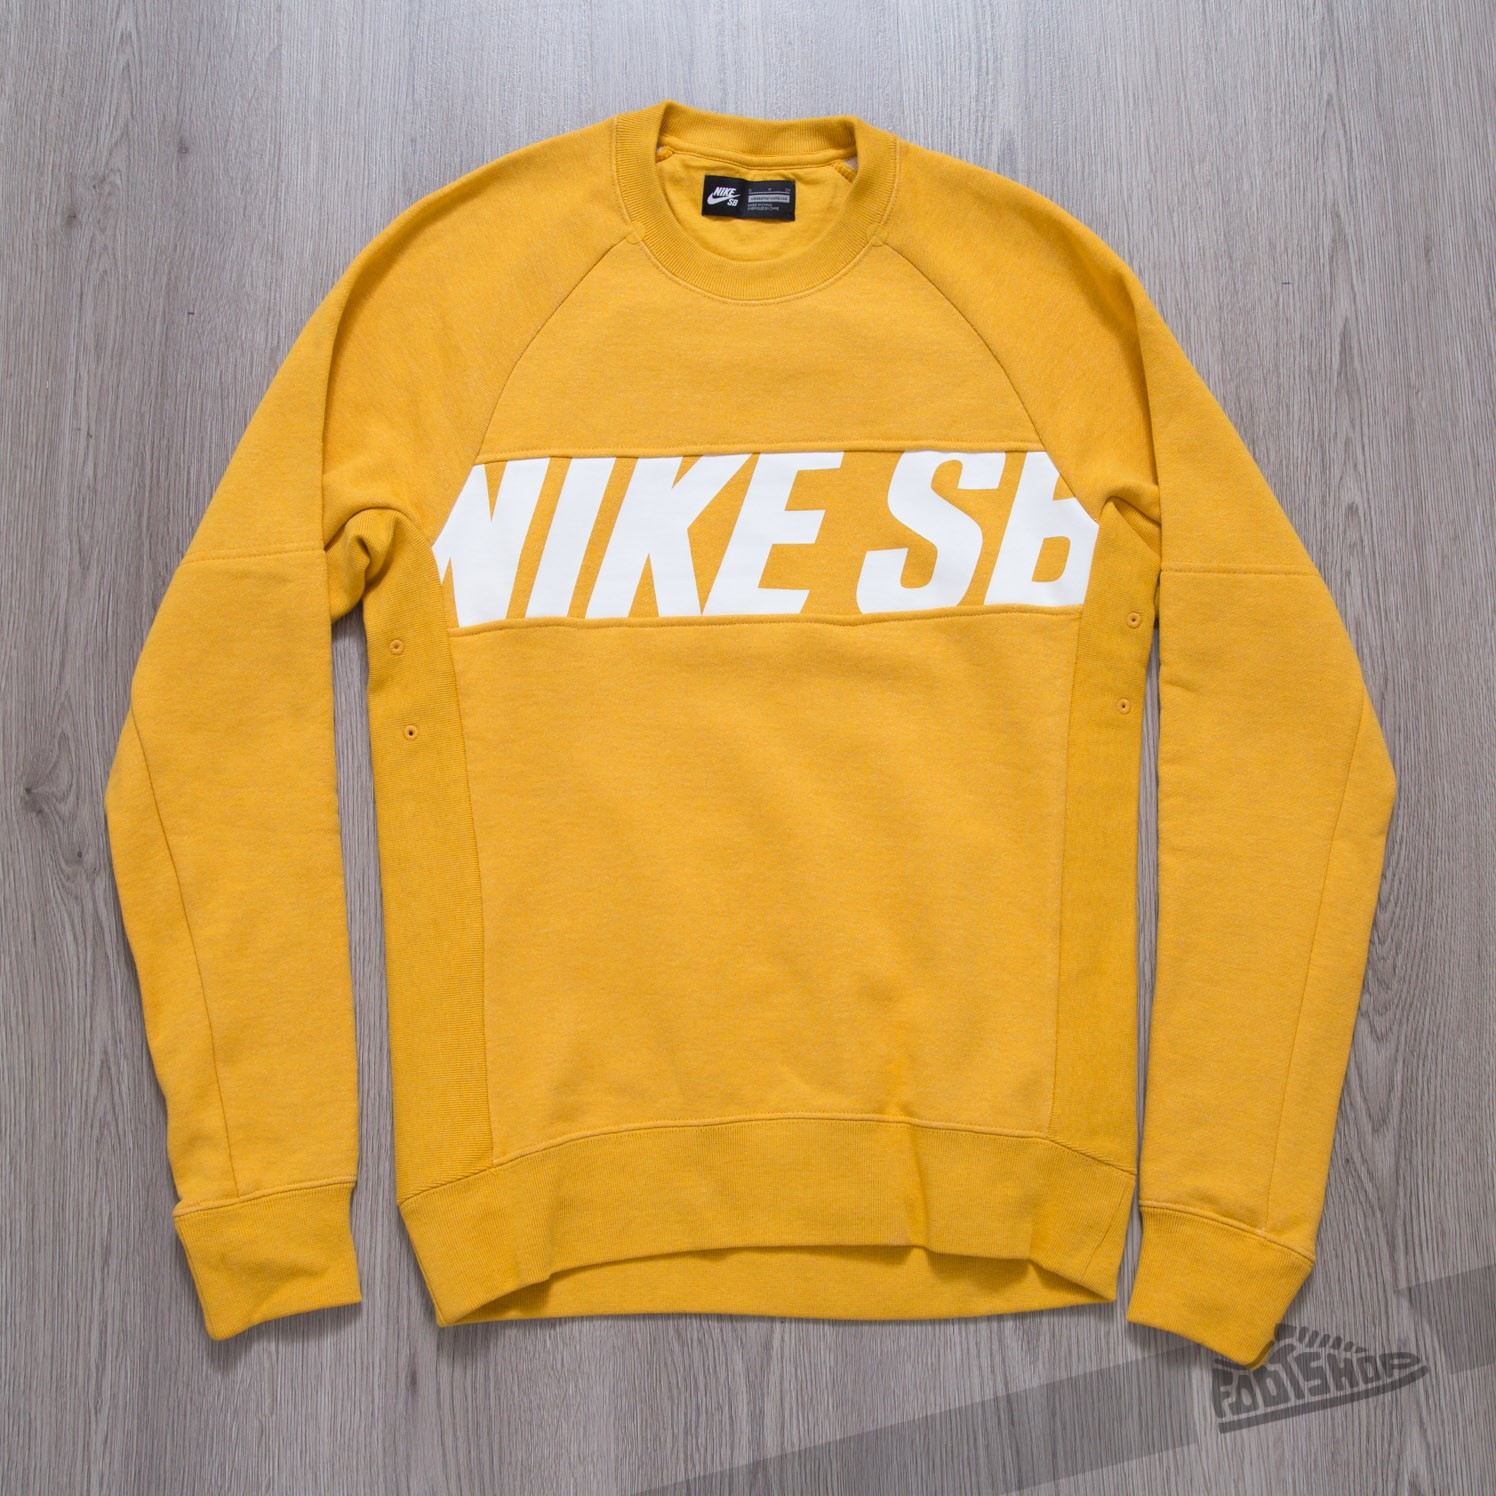 be488f7160e9 Nike SB Sweatshirt Everett Motion Crew Yellow